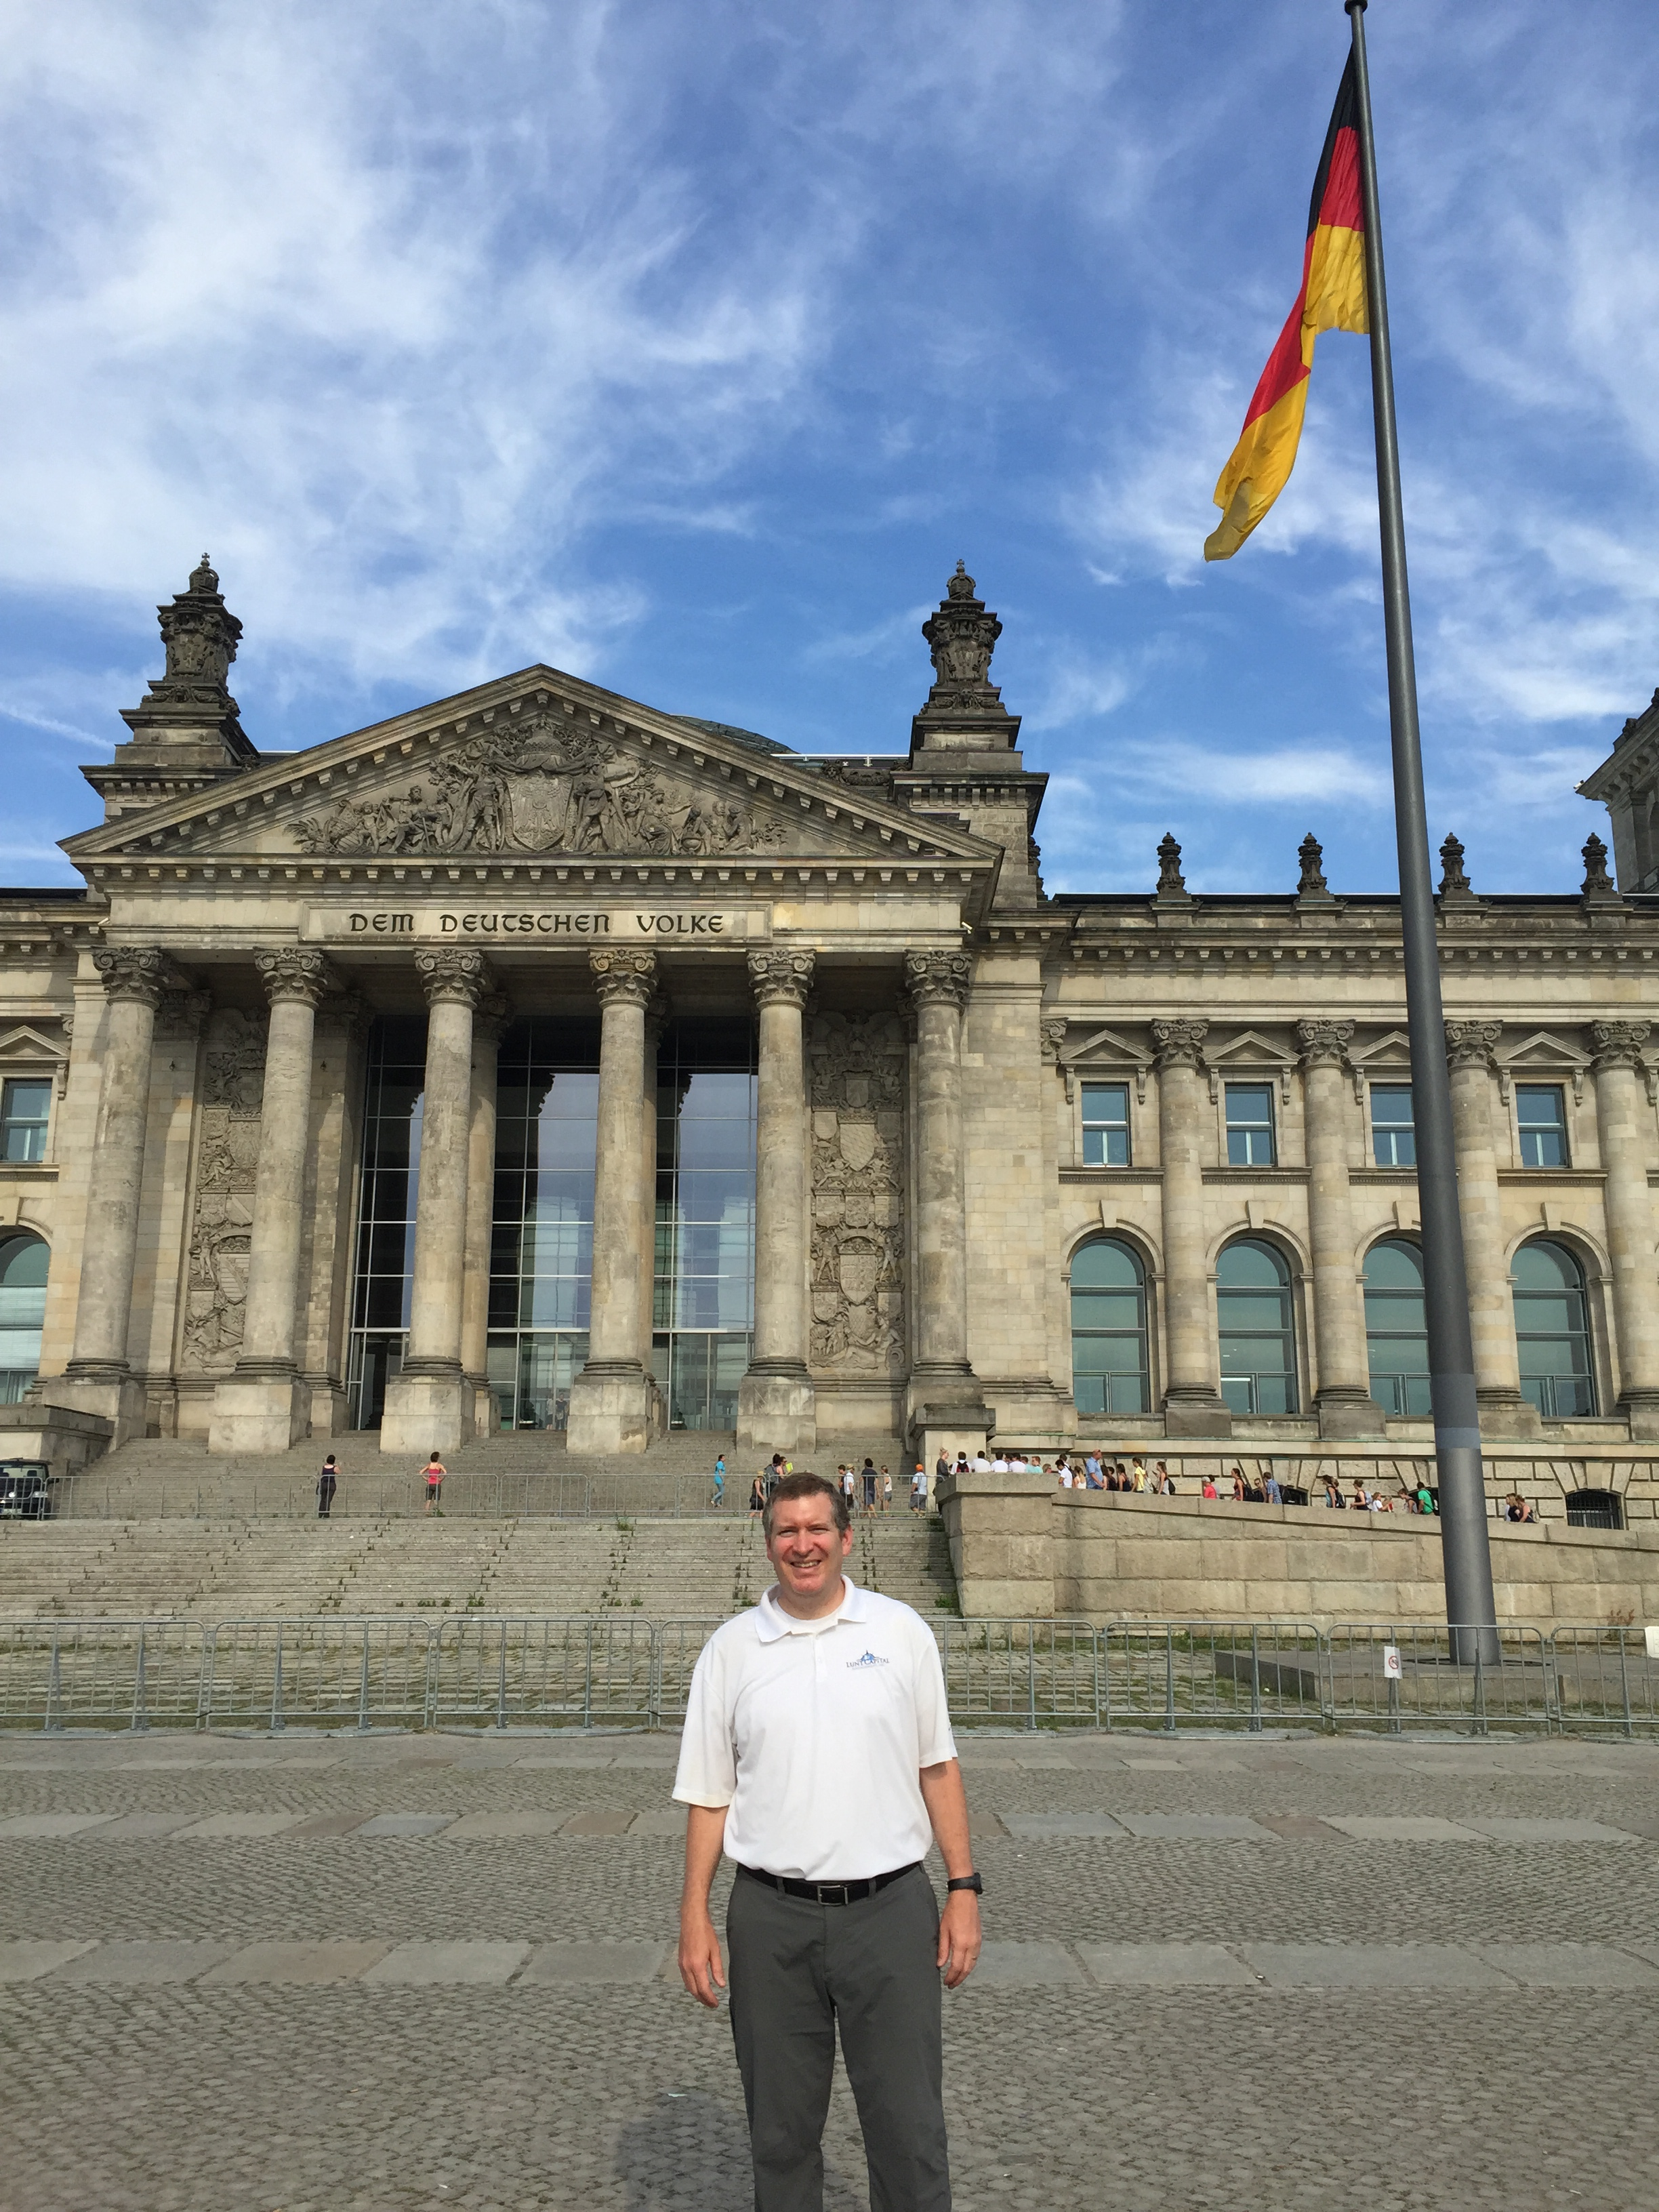 John Lunt in front of the Reichstag building.